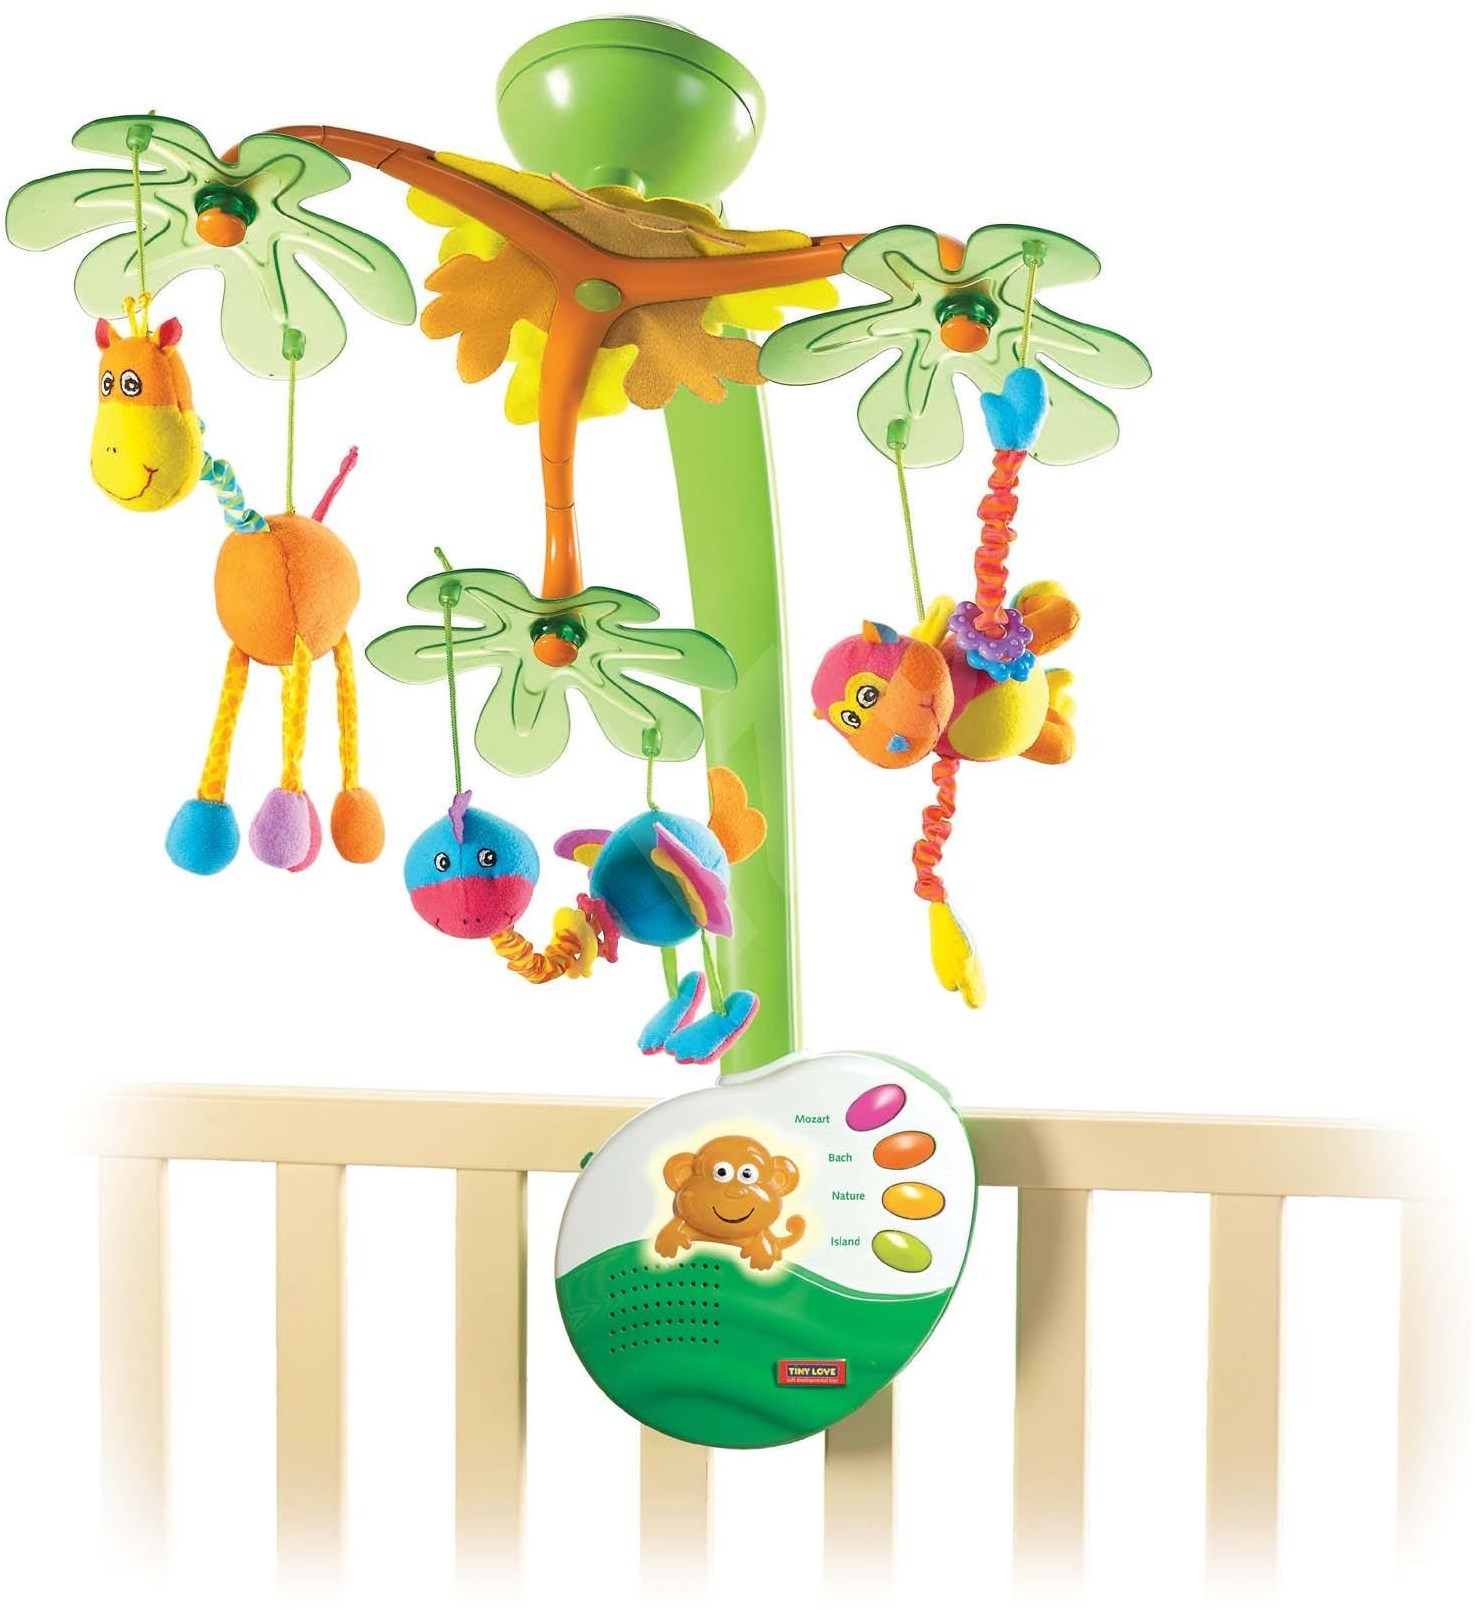 Best Crib Toys For Babies : Sweet island dream carousel crib toy alzashop